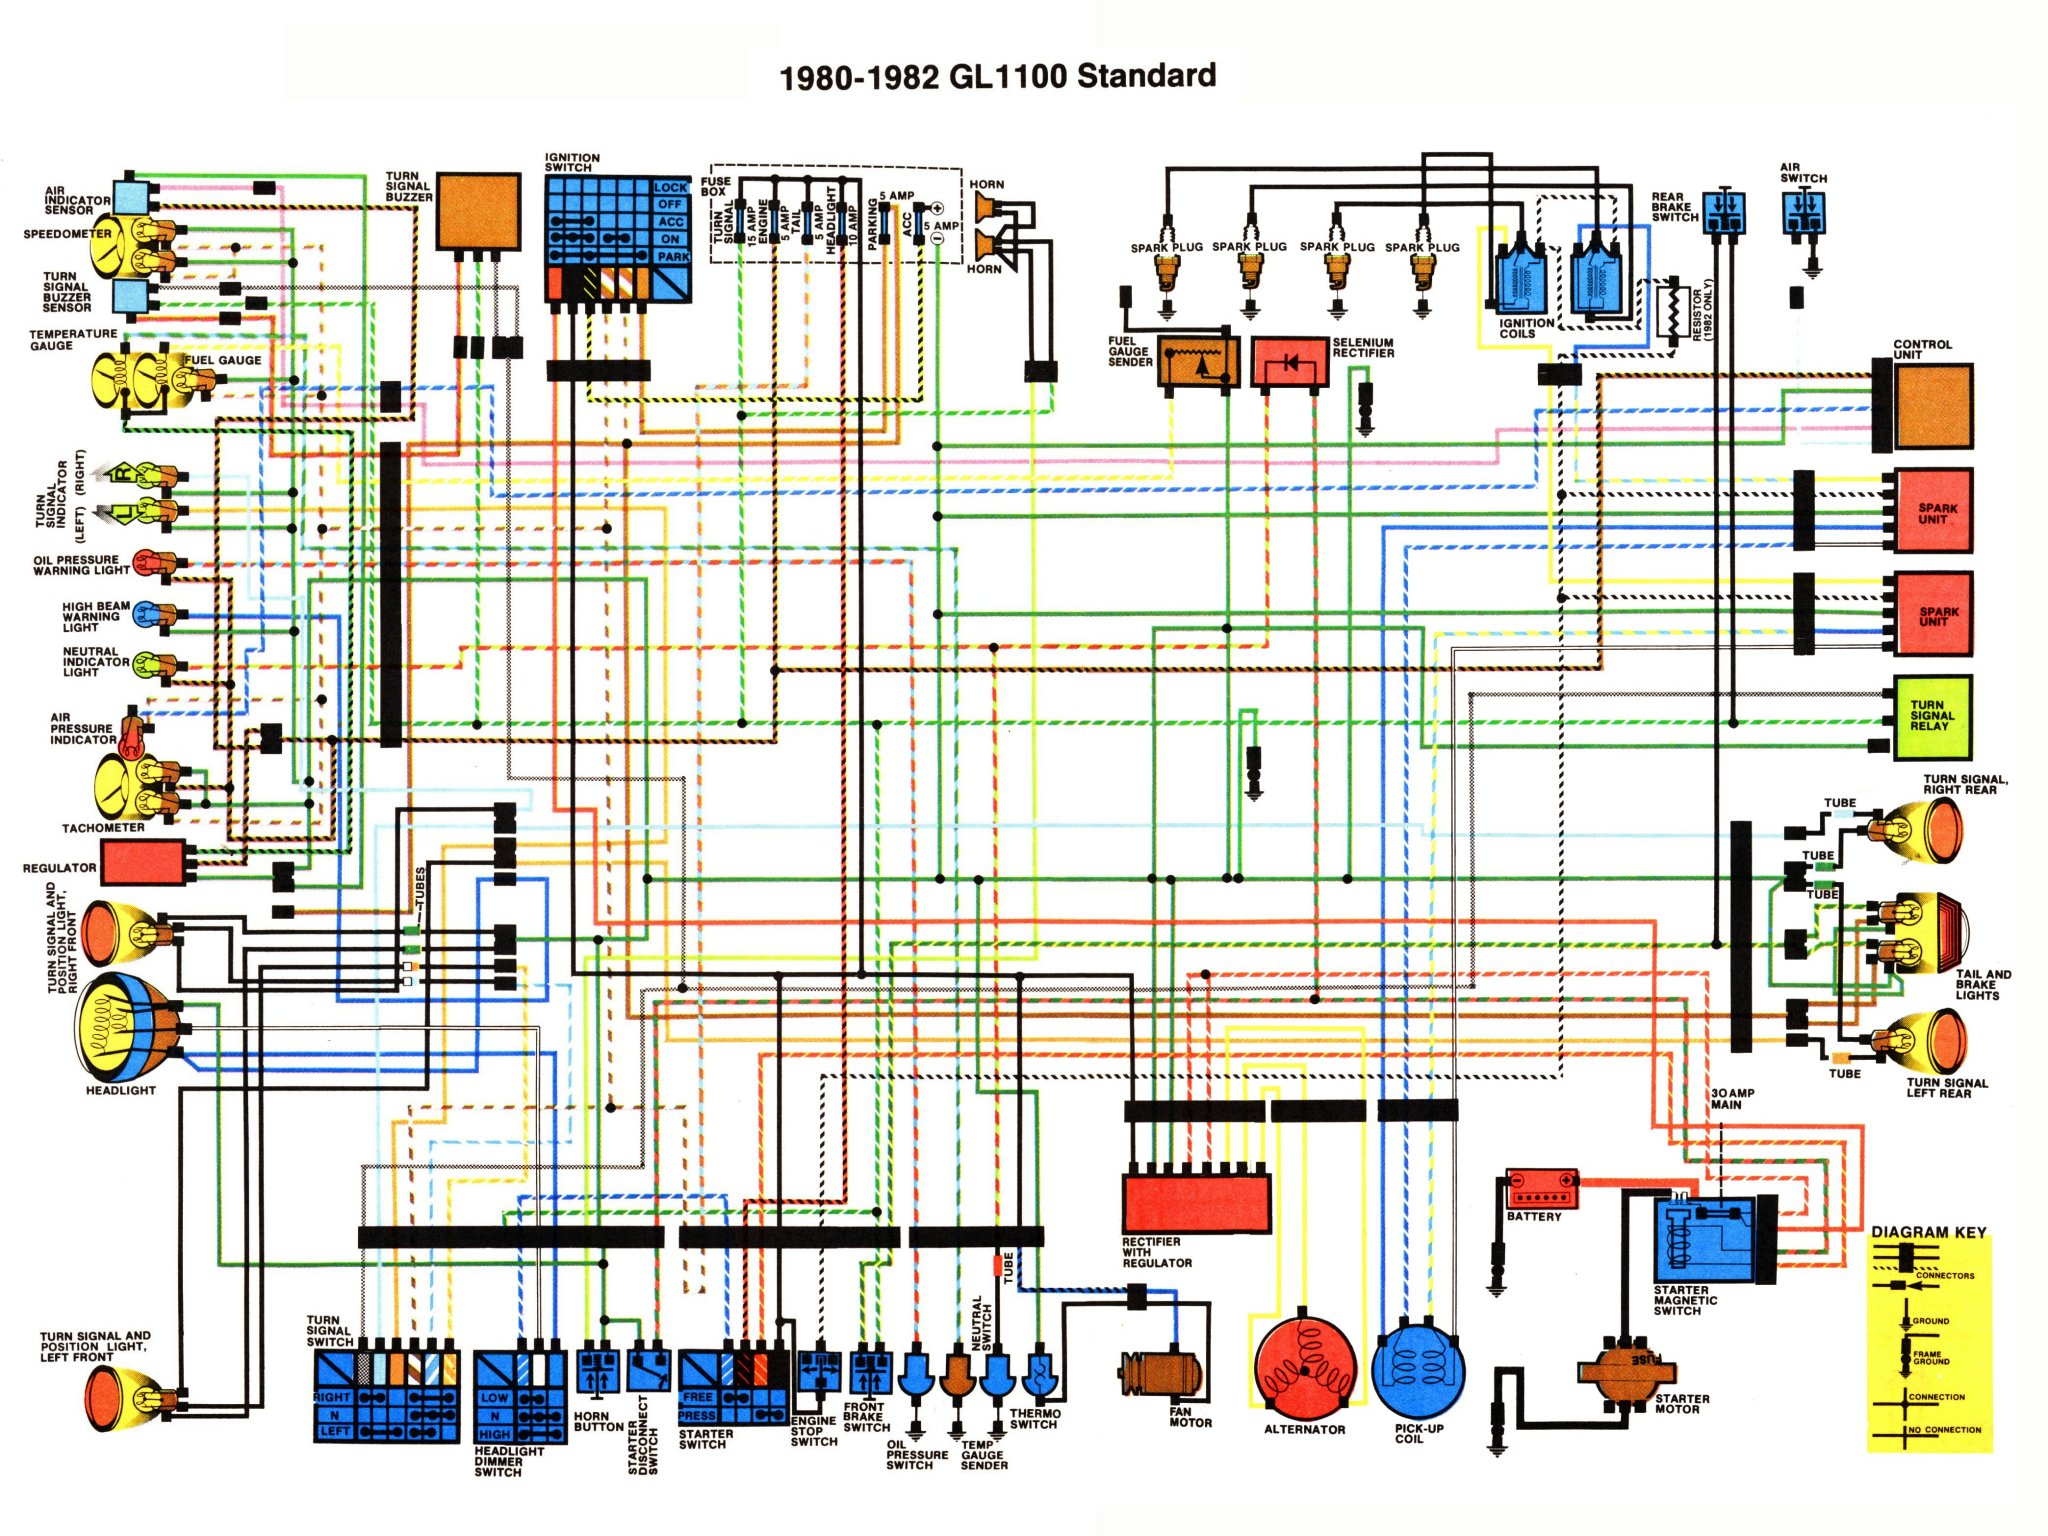 Honda Goldwing GL1100 Standard 1980 to 1982 Color Schematic DDF6B honda goldwing 1800 wiring diagram wiring diagram simonand gl1500 wiring diagram at soozxer.org